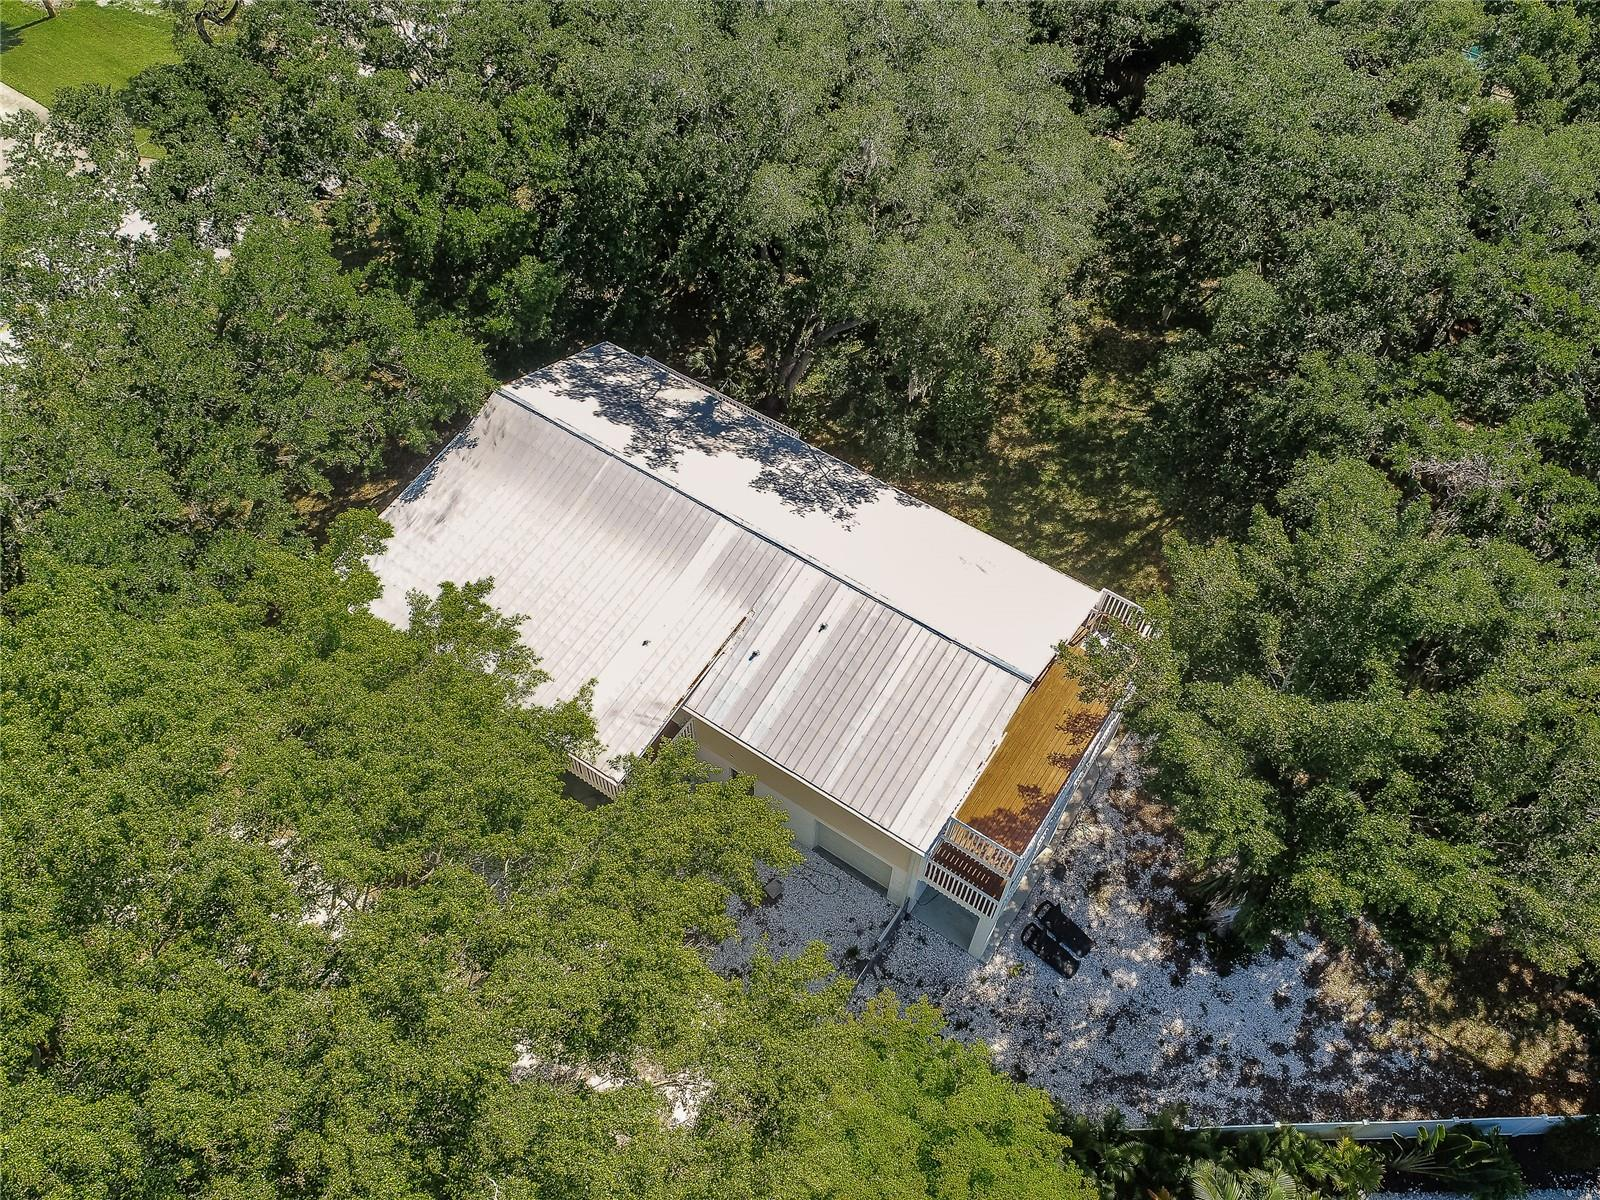 Metal roof and top deck. - Single Family Home for sale at 7811 27th Ave W, Bradenton, FL 34209 - MLS Number is A4499385